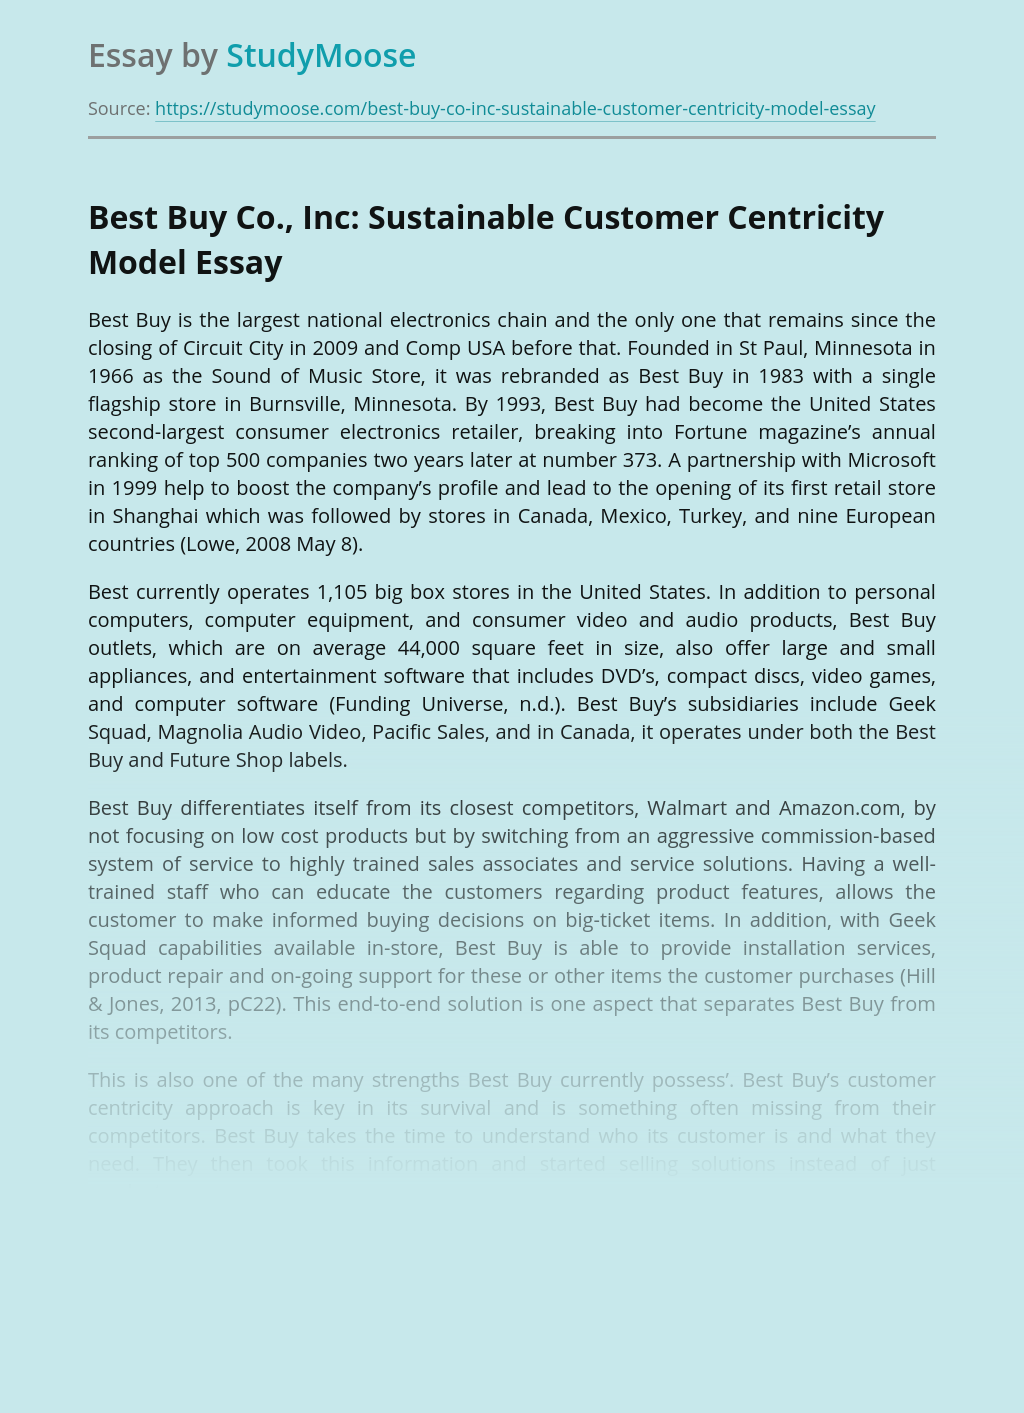 Best Buy Co., Inc: Sustainable Customer Centricity Model